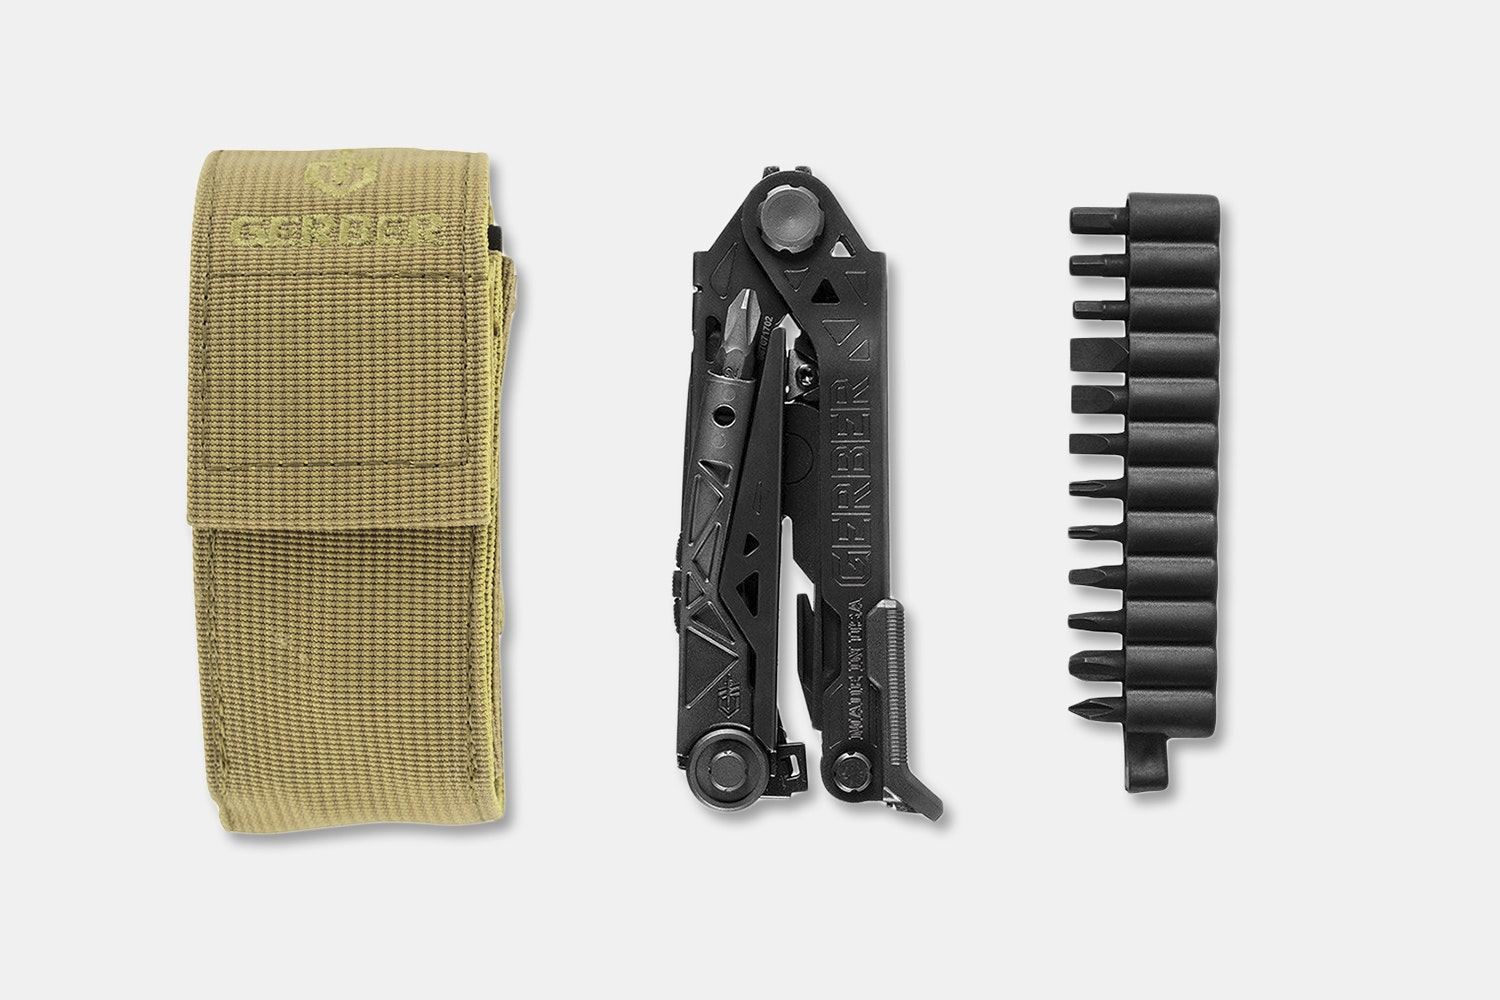 w/ Bit Set & Black MOLLE-Compatible Sheath (30-001425)